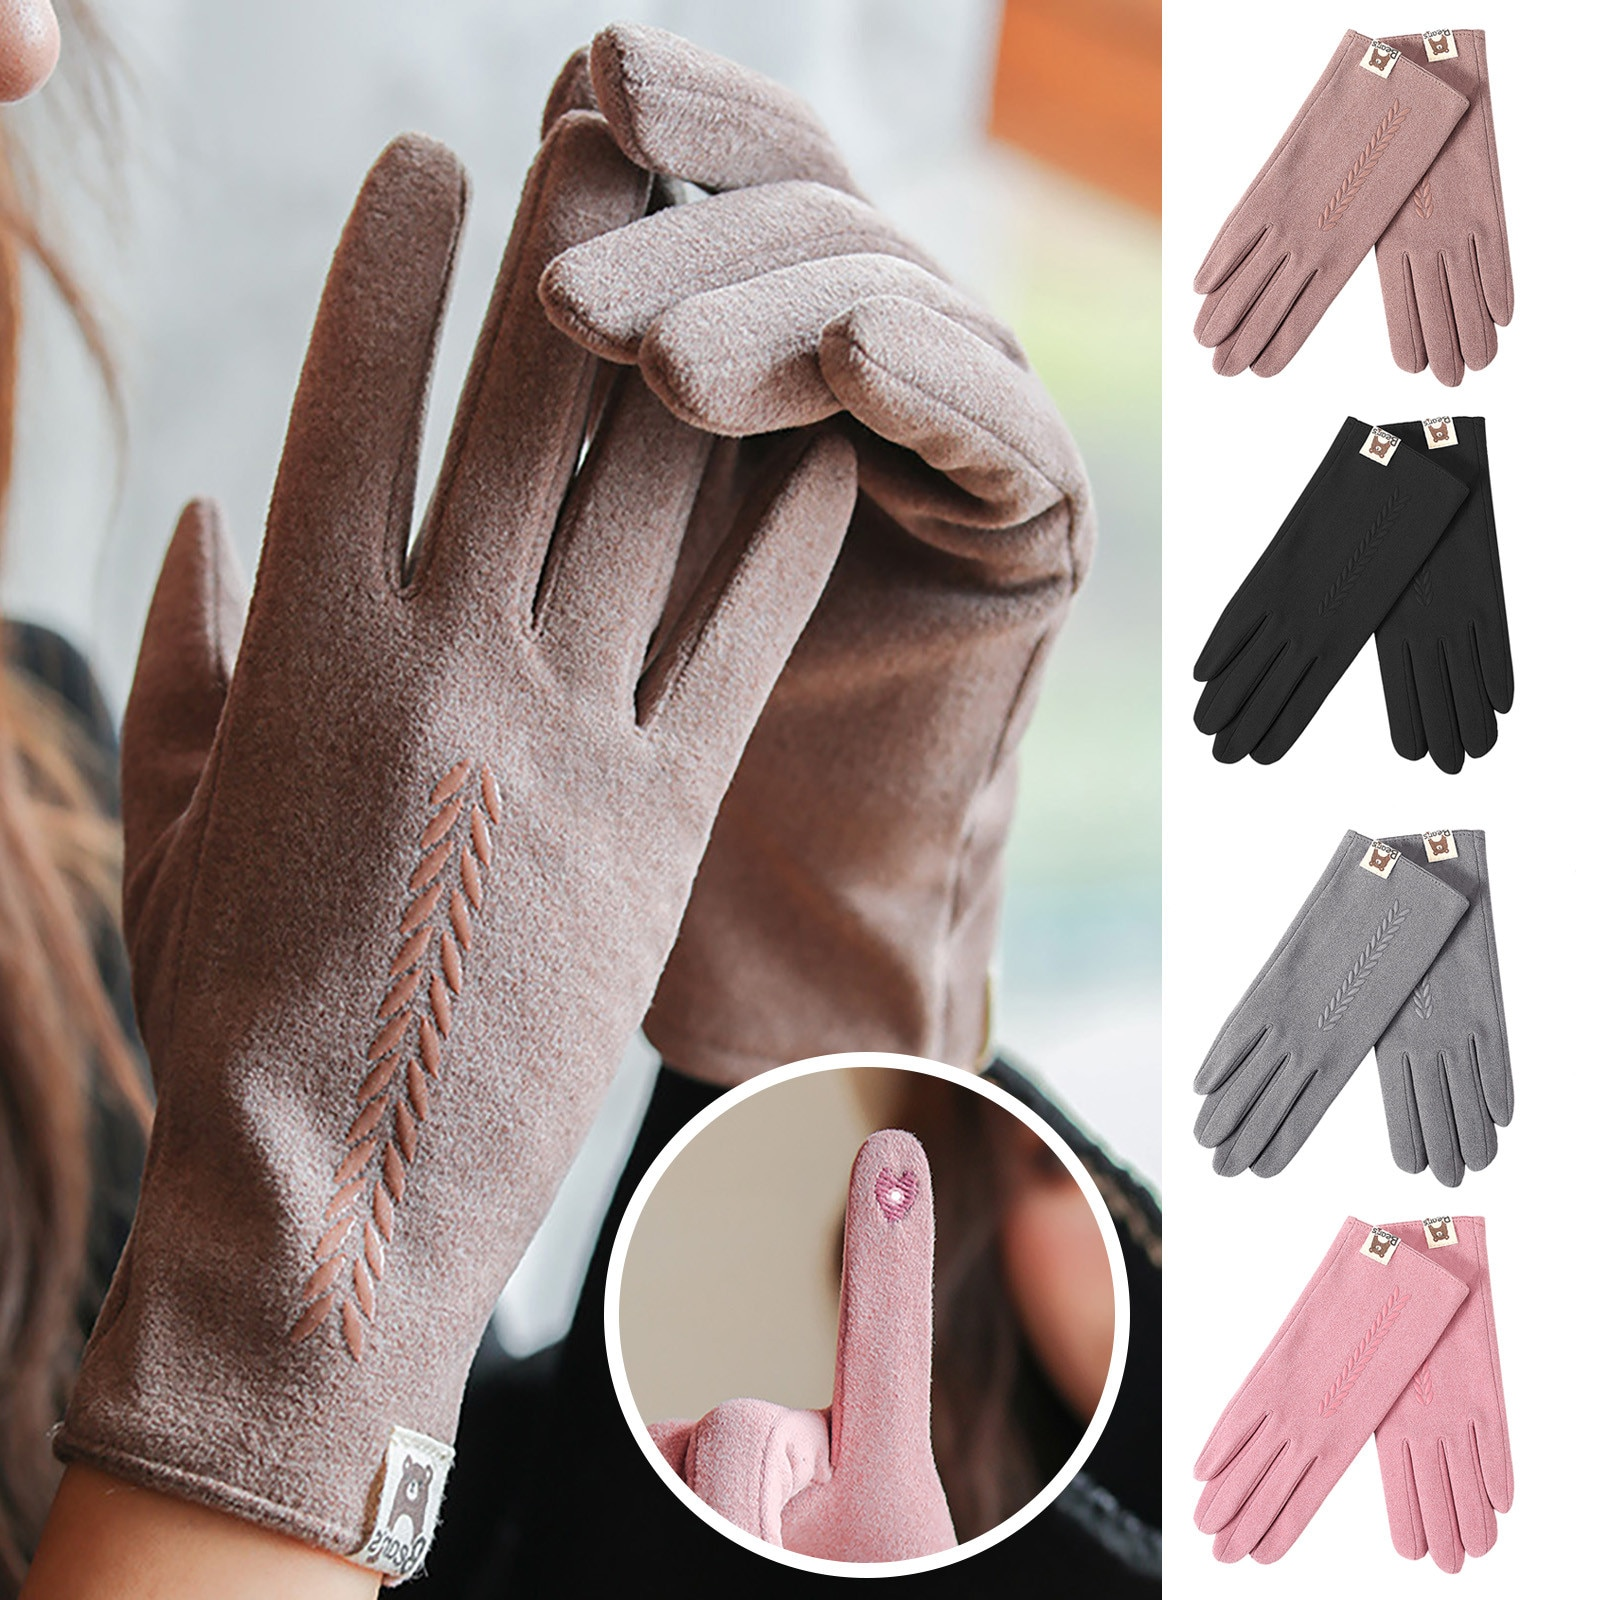 Fashion Women Winter Outdoor Plus velvet Thicken Keep Warm Casual Windproof Gloves Sweet and lovely, warm comfortable перчатки